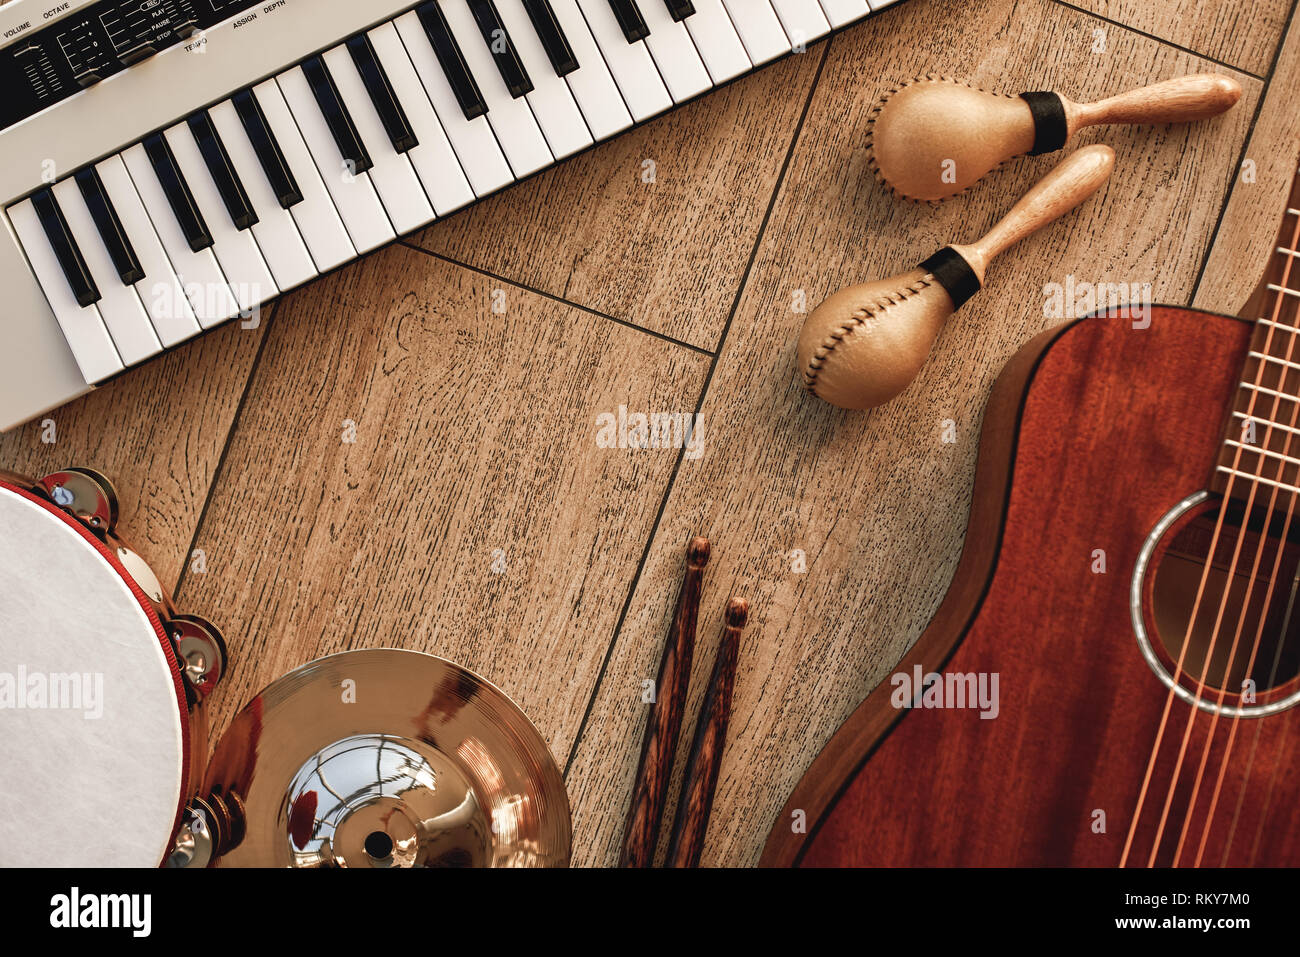 Creating a melody...Top view of musical instruments set: synthesizer, electronic guitar, wooden drum sticks, golden cymbal, drums, gold maracas and tambourine lying on wooden background. Musical instruments. Music equipment - Stock Image